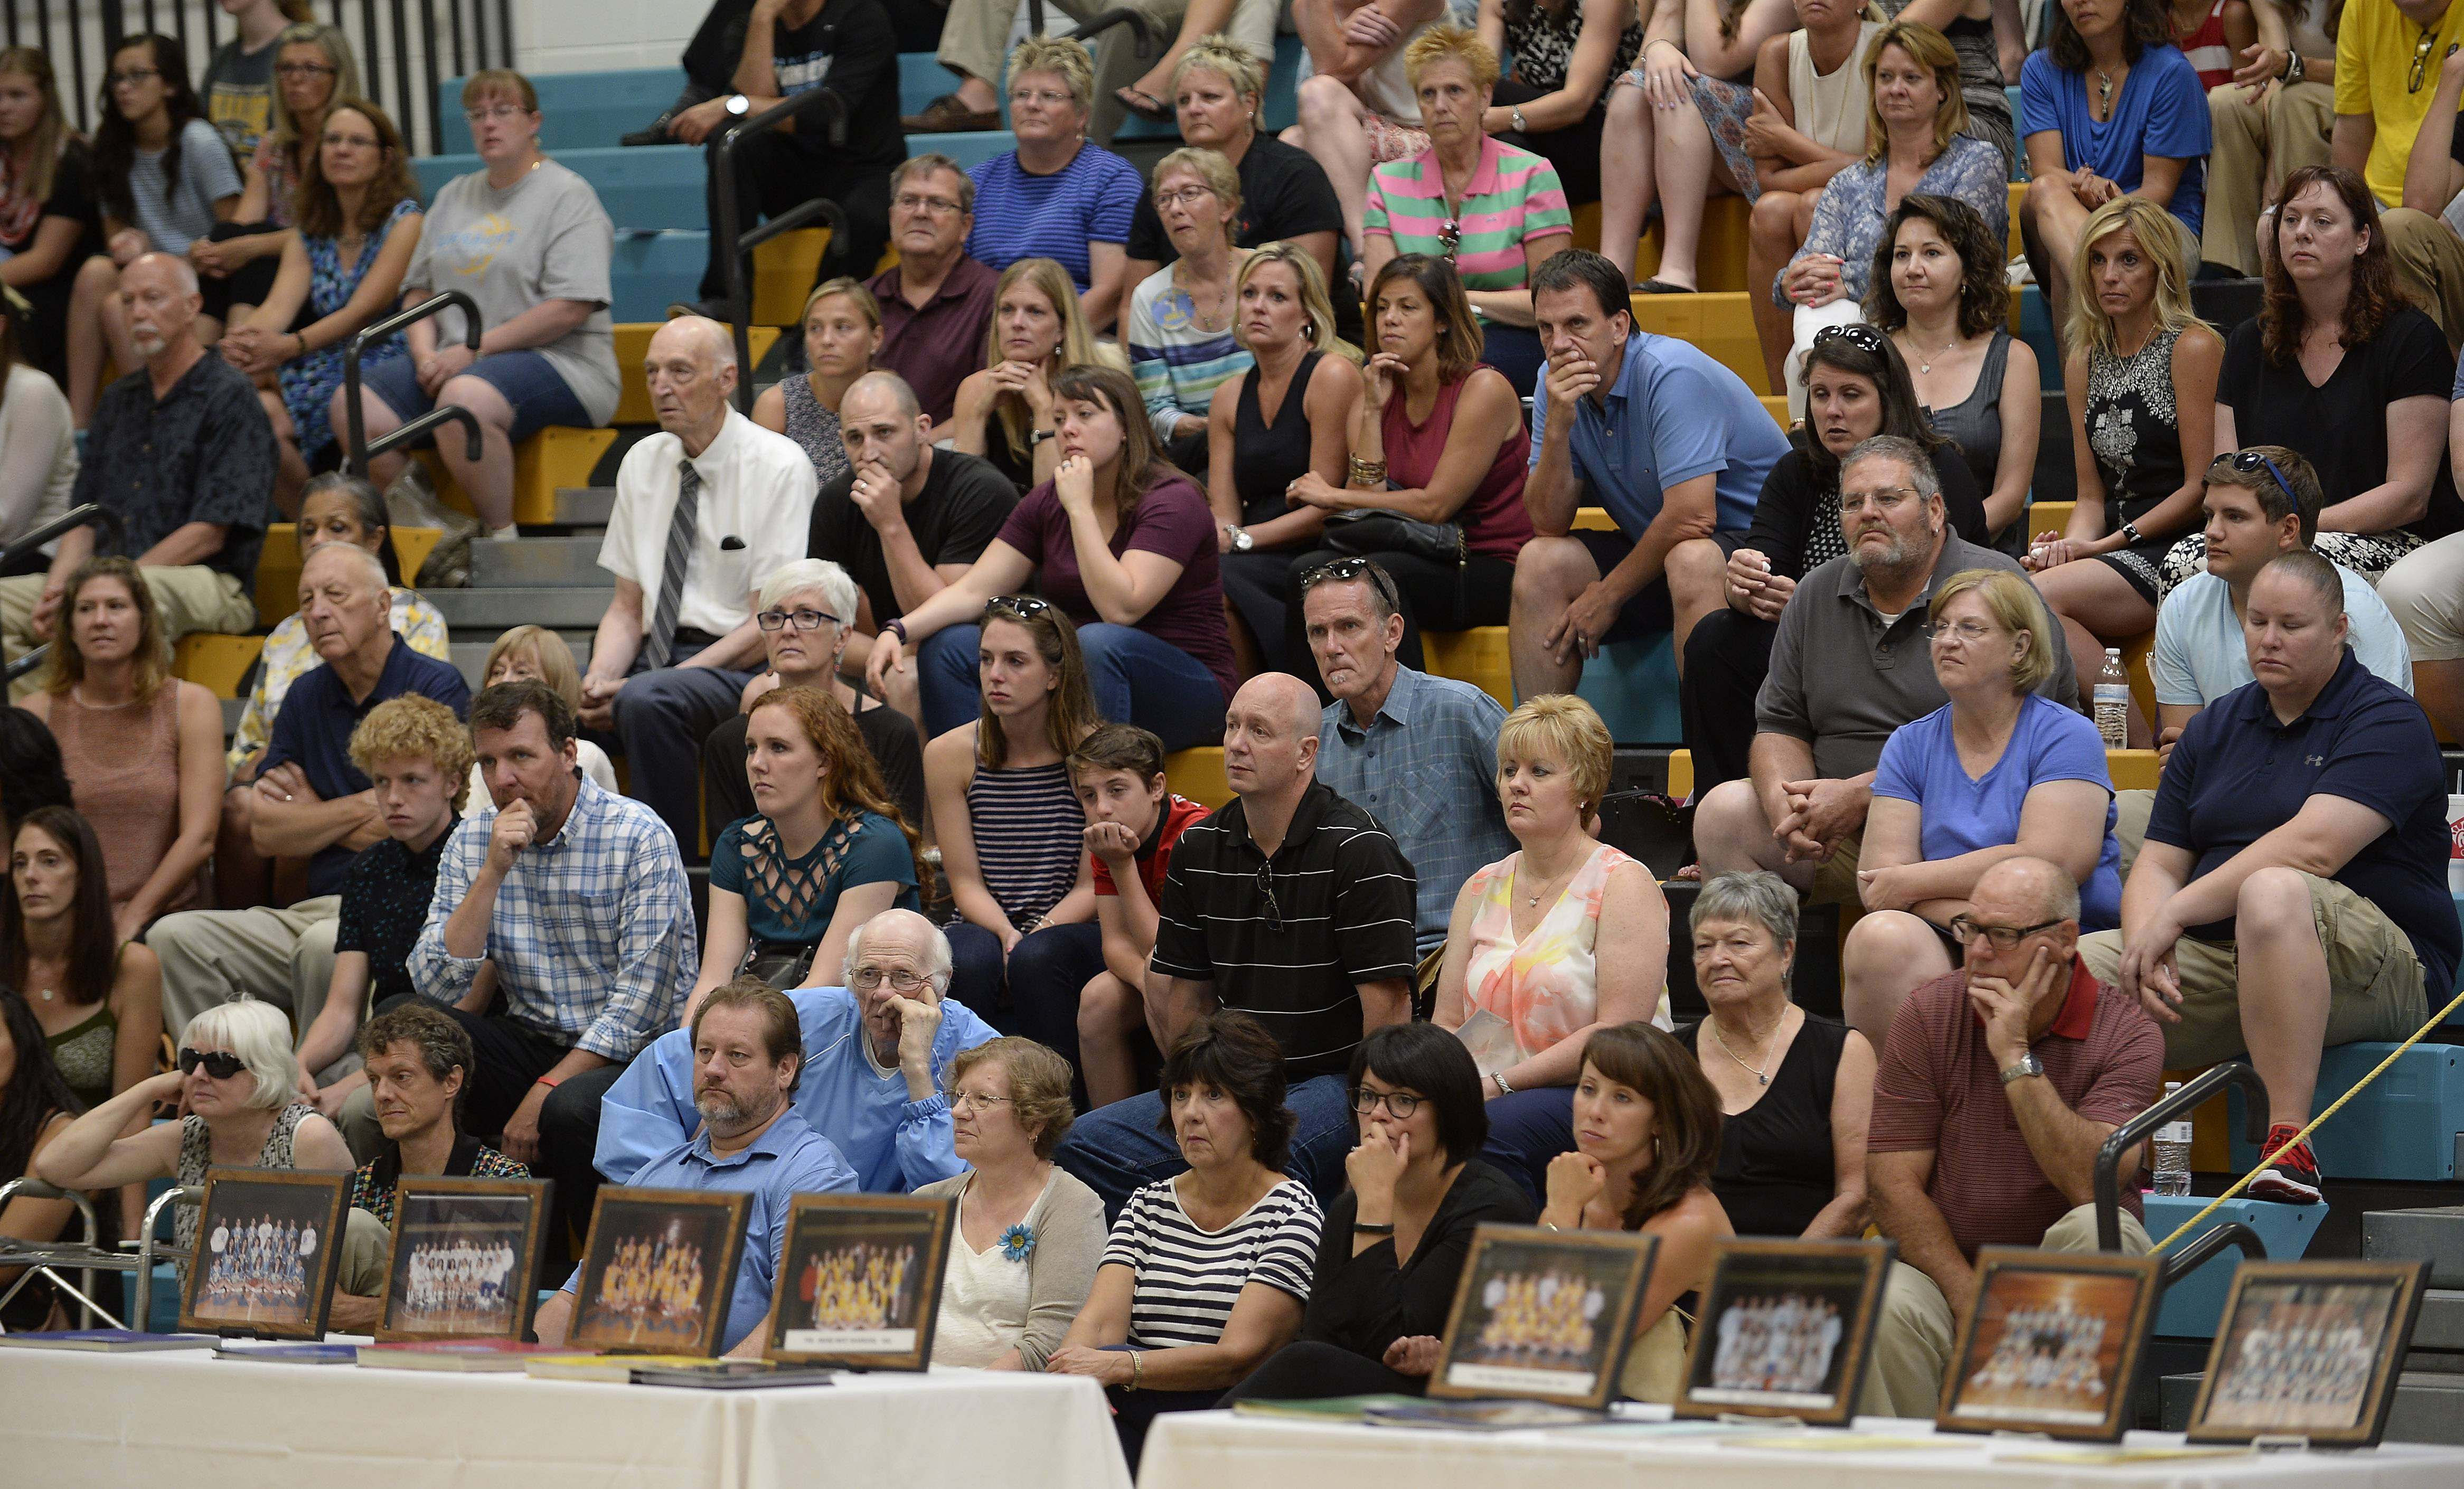 Maine West High School's spectator gymnasium was busy Saturday with visitors celebrating the life of longtime girls basketball coach Derril Kipp, who died July 5. He was 71.